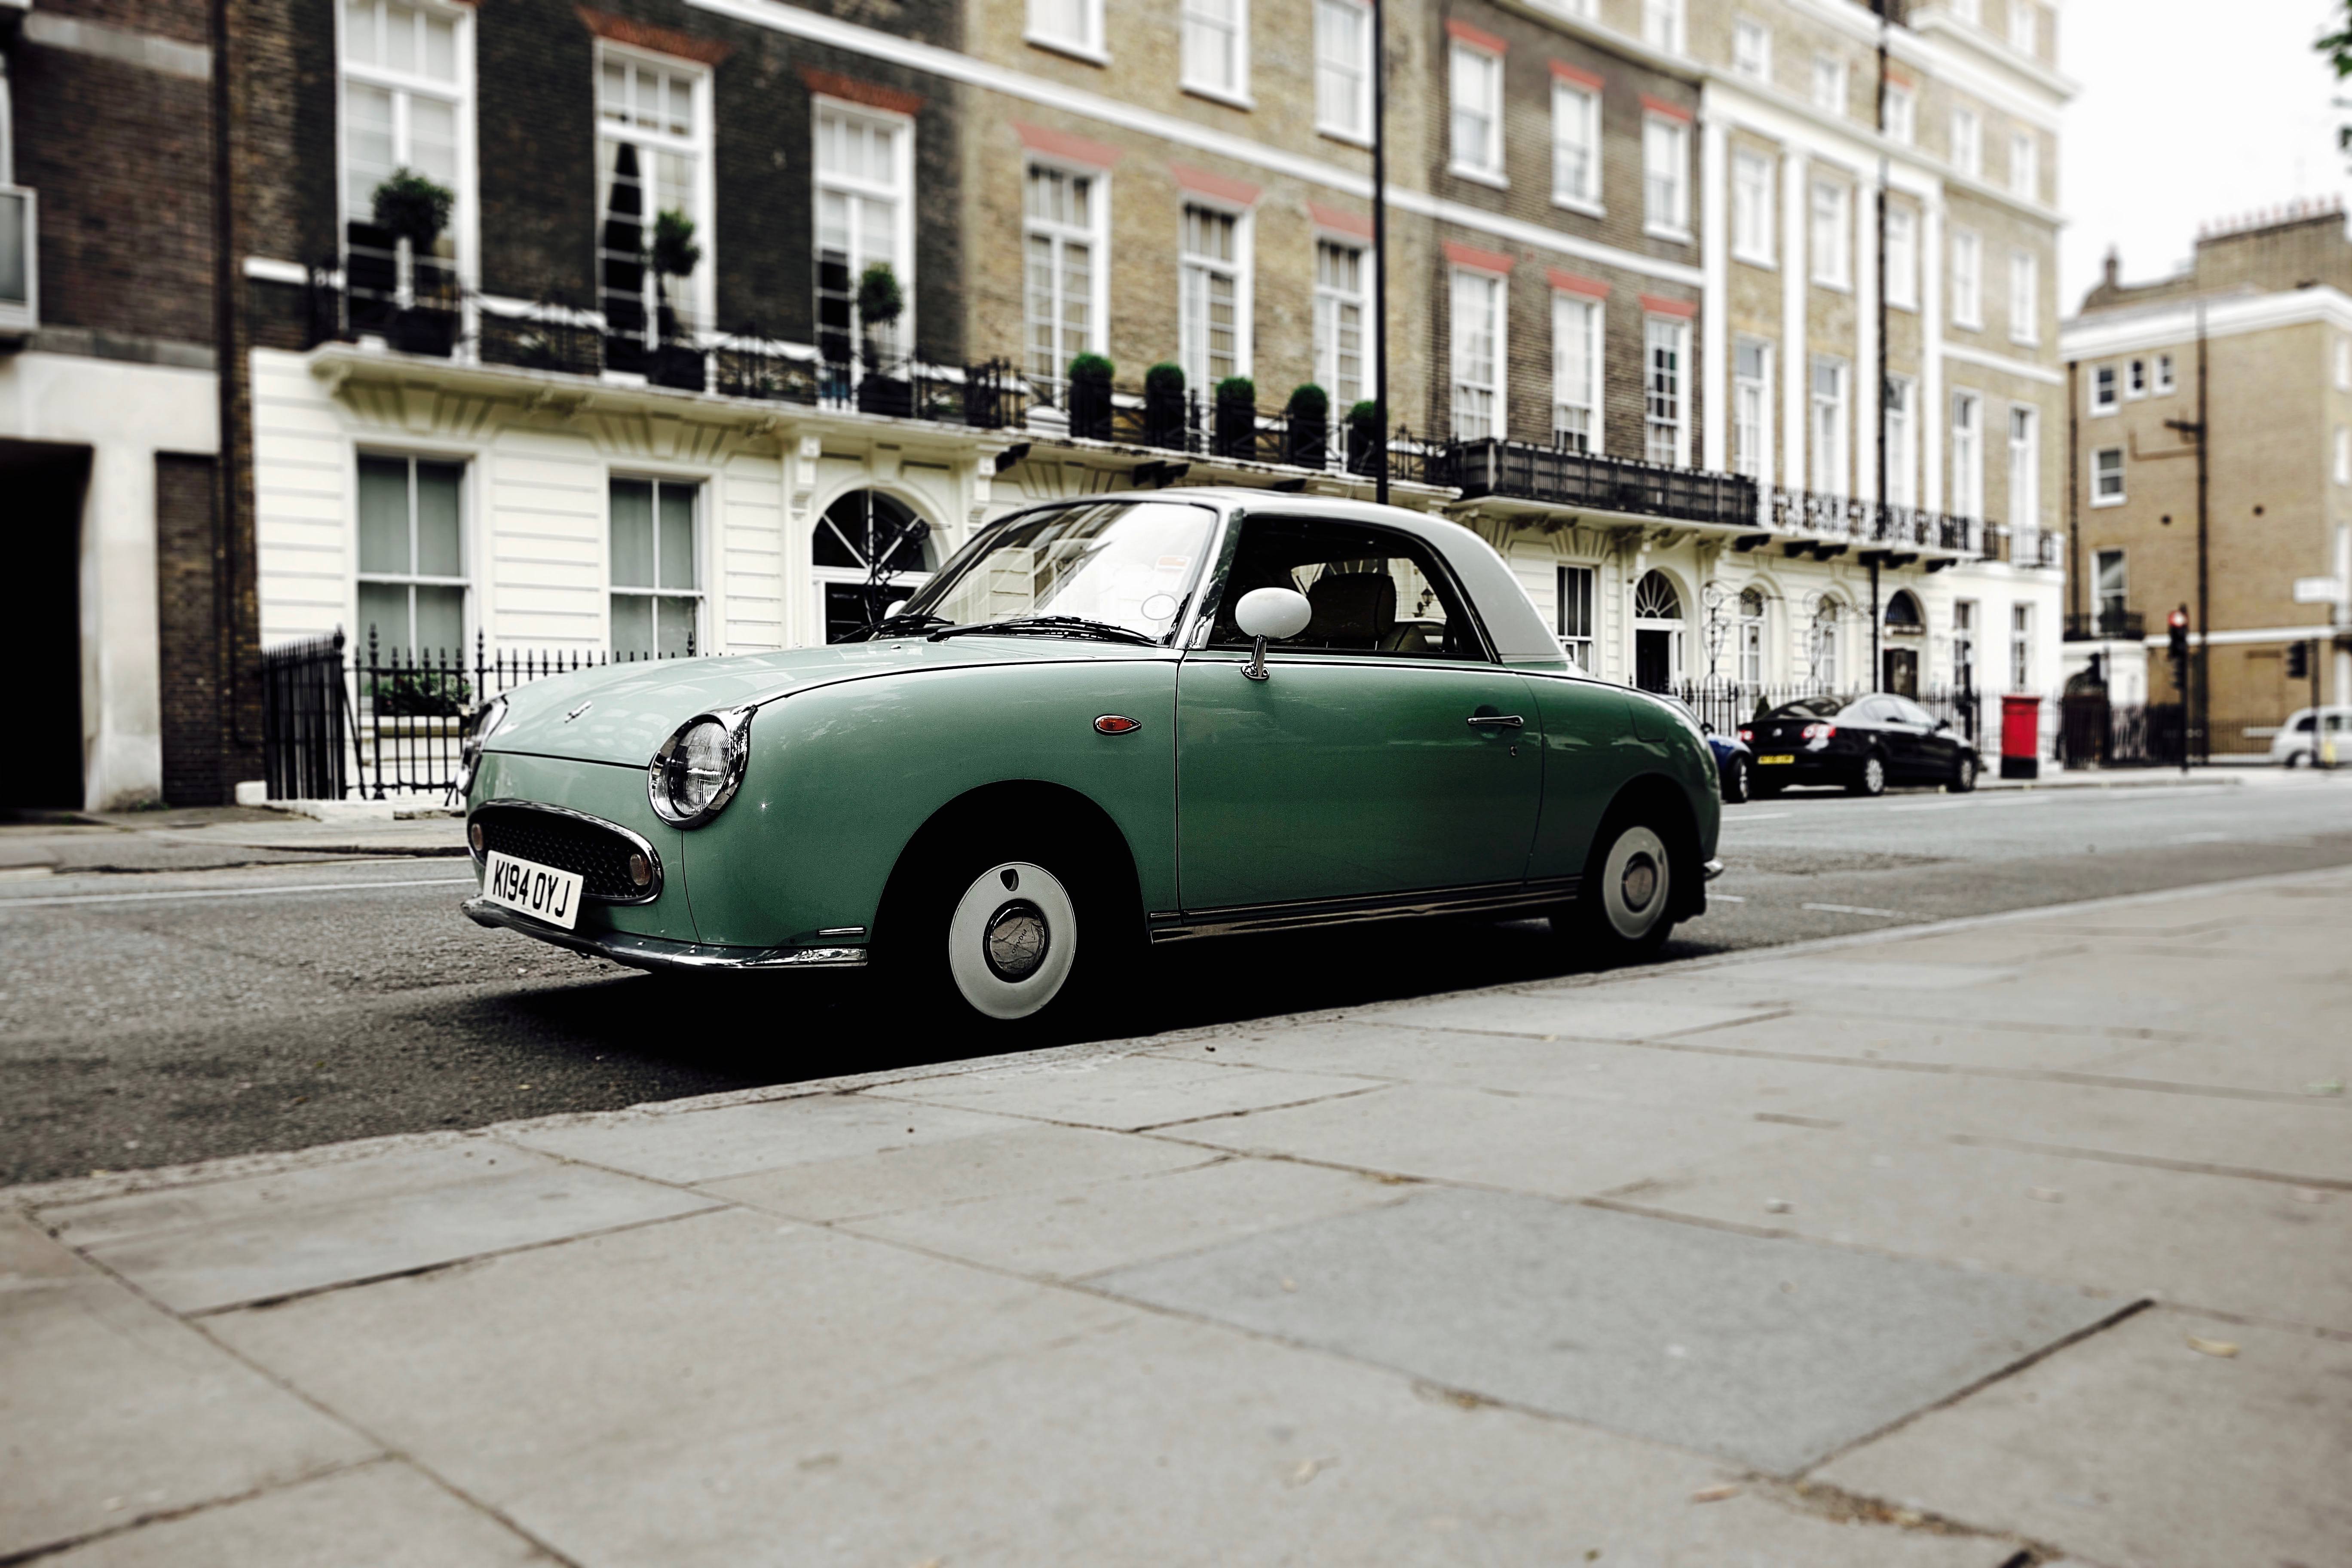 I found this car while strolling around in London.